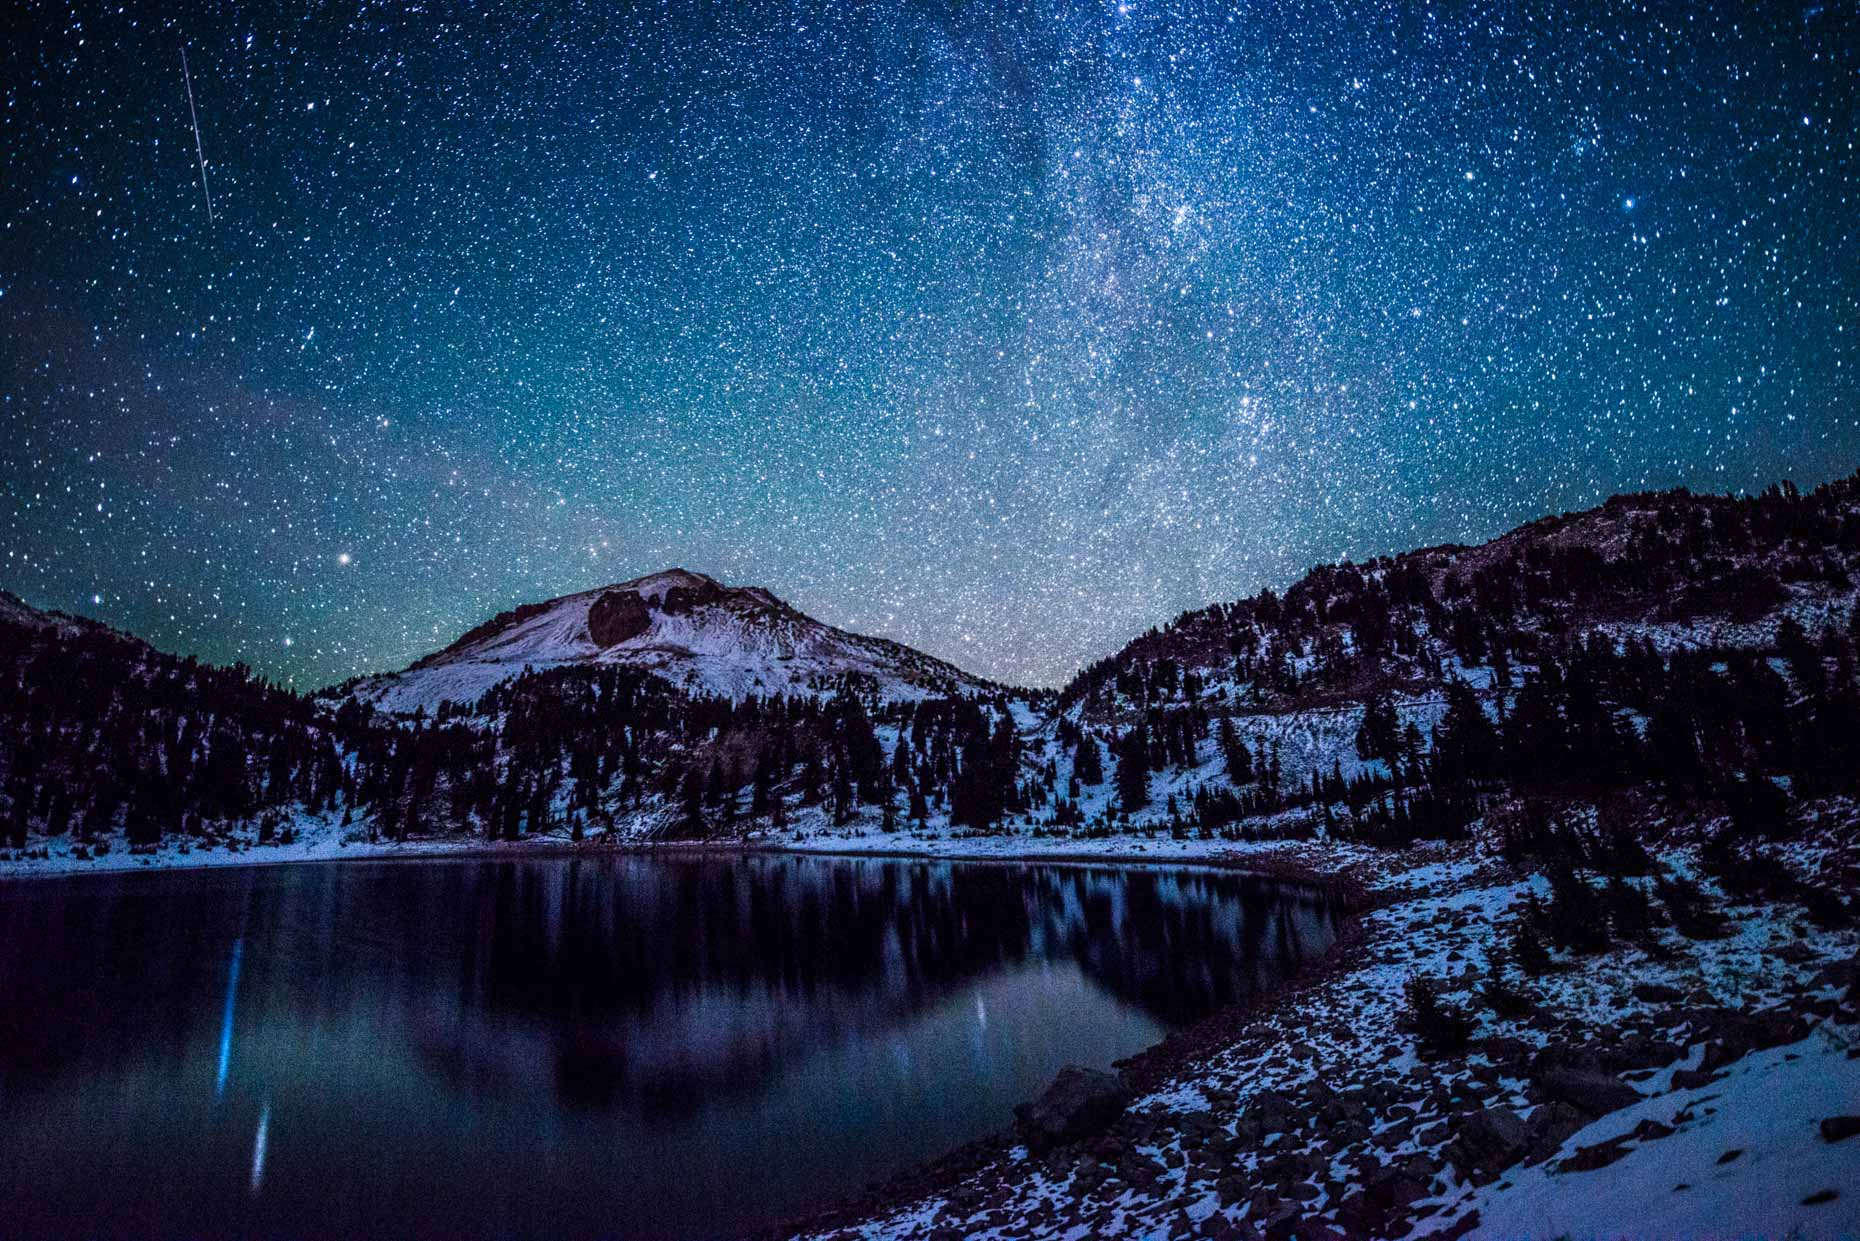 Night Sky - Lake Helen, Lassen Volcanic National Park, California